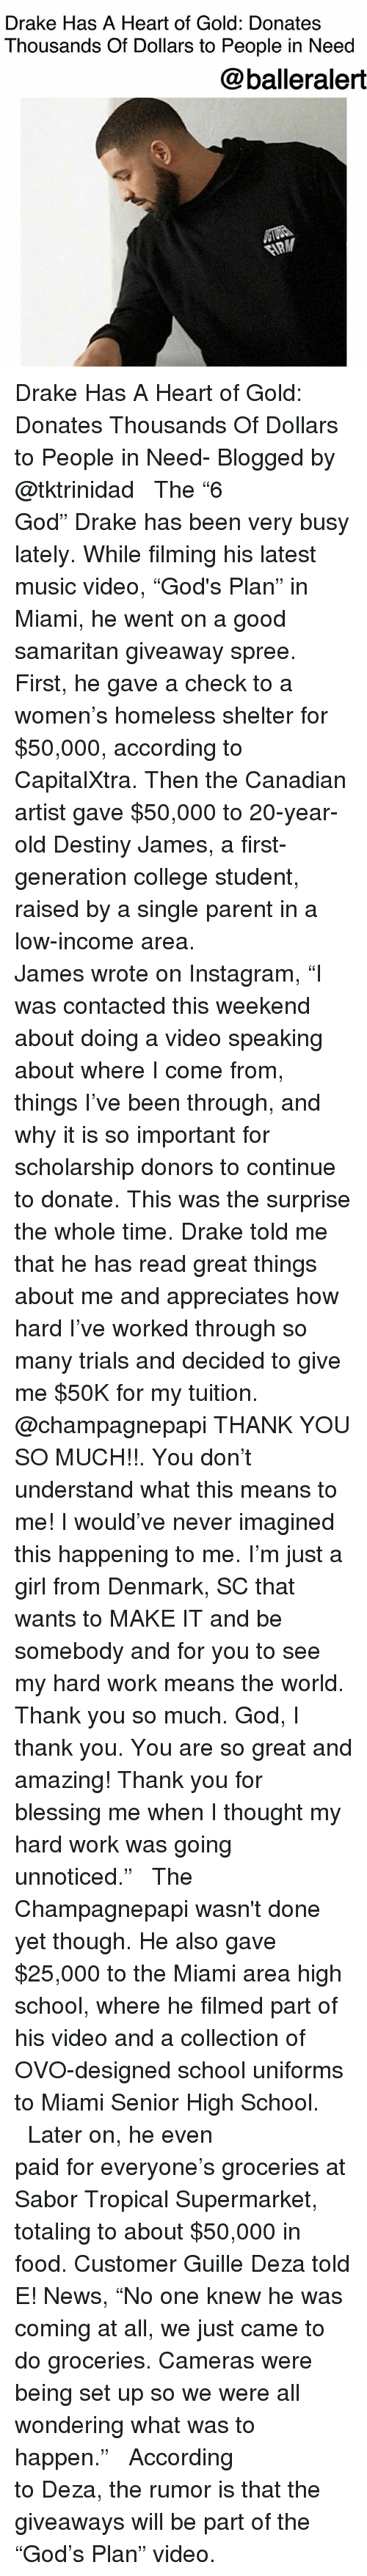 """College, Destiny, and Drake: Drake Has A Heart of Gold: Donates  Thousands Of Dollars to People in Need  @balleralert Drake Has A Heart of Gold: Donates Thousands Of Dollars to People in Need- Blogged by @tktrinidad ⠀⠀⠀⠀⠀⠀⠀⠀⠀ ⠀⠀⠀⠀⠀⠀⠀⠀⠀ The """"6 God"""" Drake has been very busy lately. While filming his latest music video, """"God's Plan"""" in Miami, he went on a good samaritan giveaway spree. First, he gave a check to a women's homeless shelter for $50,000, according to CapitalXtra. Then the Canadian artist gave $50,000 to 20-year-old Destiny James, a first-generation college student, raised by a single parent in a low-income area. ⠀⠀⠀⠀⠀⠀⠀⠀⠀ ⠀⠀⠀⠀⠀⠀⠀⠀⠀ James wrote on Instagram, """"I was contacted this weekend about doing a video speaking about where I come from, things I've been through, and why it is so important for scholarship donors to continue to donate. This was the surprise the whole time. Drake told me that he has read great things about me and appreciates how hard I've worked through so many trials and decided to give me $50K for my tuition. @champagnepapi THANK YOU SO MUCH!!. You don't understand what this means to me! I would've never imagined this happening to me. I'm just a girl from Denmark, SC that wants to MAKE IT and be somebody and for you to see my hard work means the world. Thank you so much. God, I thank you. You are so great and amazing! Thank you for blessing me when I thought my hard work was going unnoticed."""" ⠀⠀⠀⠀⠀⠀⠀⠀⠀ ⠀⠀⠀⠀⠀⠀⠀⠀⠀ The Champagnepapi wasn't done yet though. He also gave $25,000 to the Miami area high school, where he filmed part of his video and a collection of OVO-designed school uniforms to Miami Senior High School. ⠀⠀⠀⠀⠀⠀⠀⠀⠀ ⠀⠀⠀⠀⠀⠀⠀⠀⠀ Later on, he even paid for everyone's groceries at Sabor Tropical Supermarket, totaling to about $50,000 in food. Customer Guille Deza told E! News, """"No one knew he was coming at all, we just came to do groceries. Cameras were being set up so we were all wondering what was to happen."""" ⠀⠀⠀⠀⠀⠀⠀⠀⠀ ⠀⠀⠀⠀⠀⠀⠀⠀⠀ Acc"""